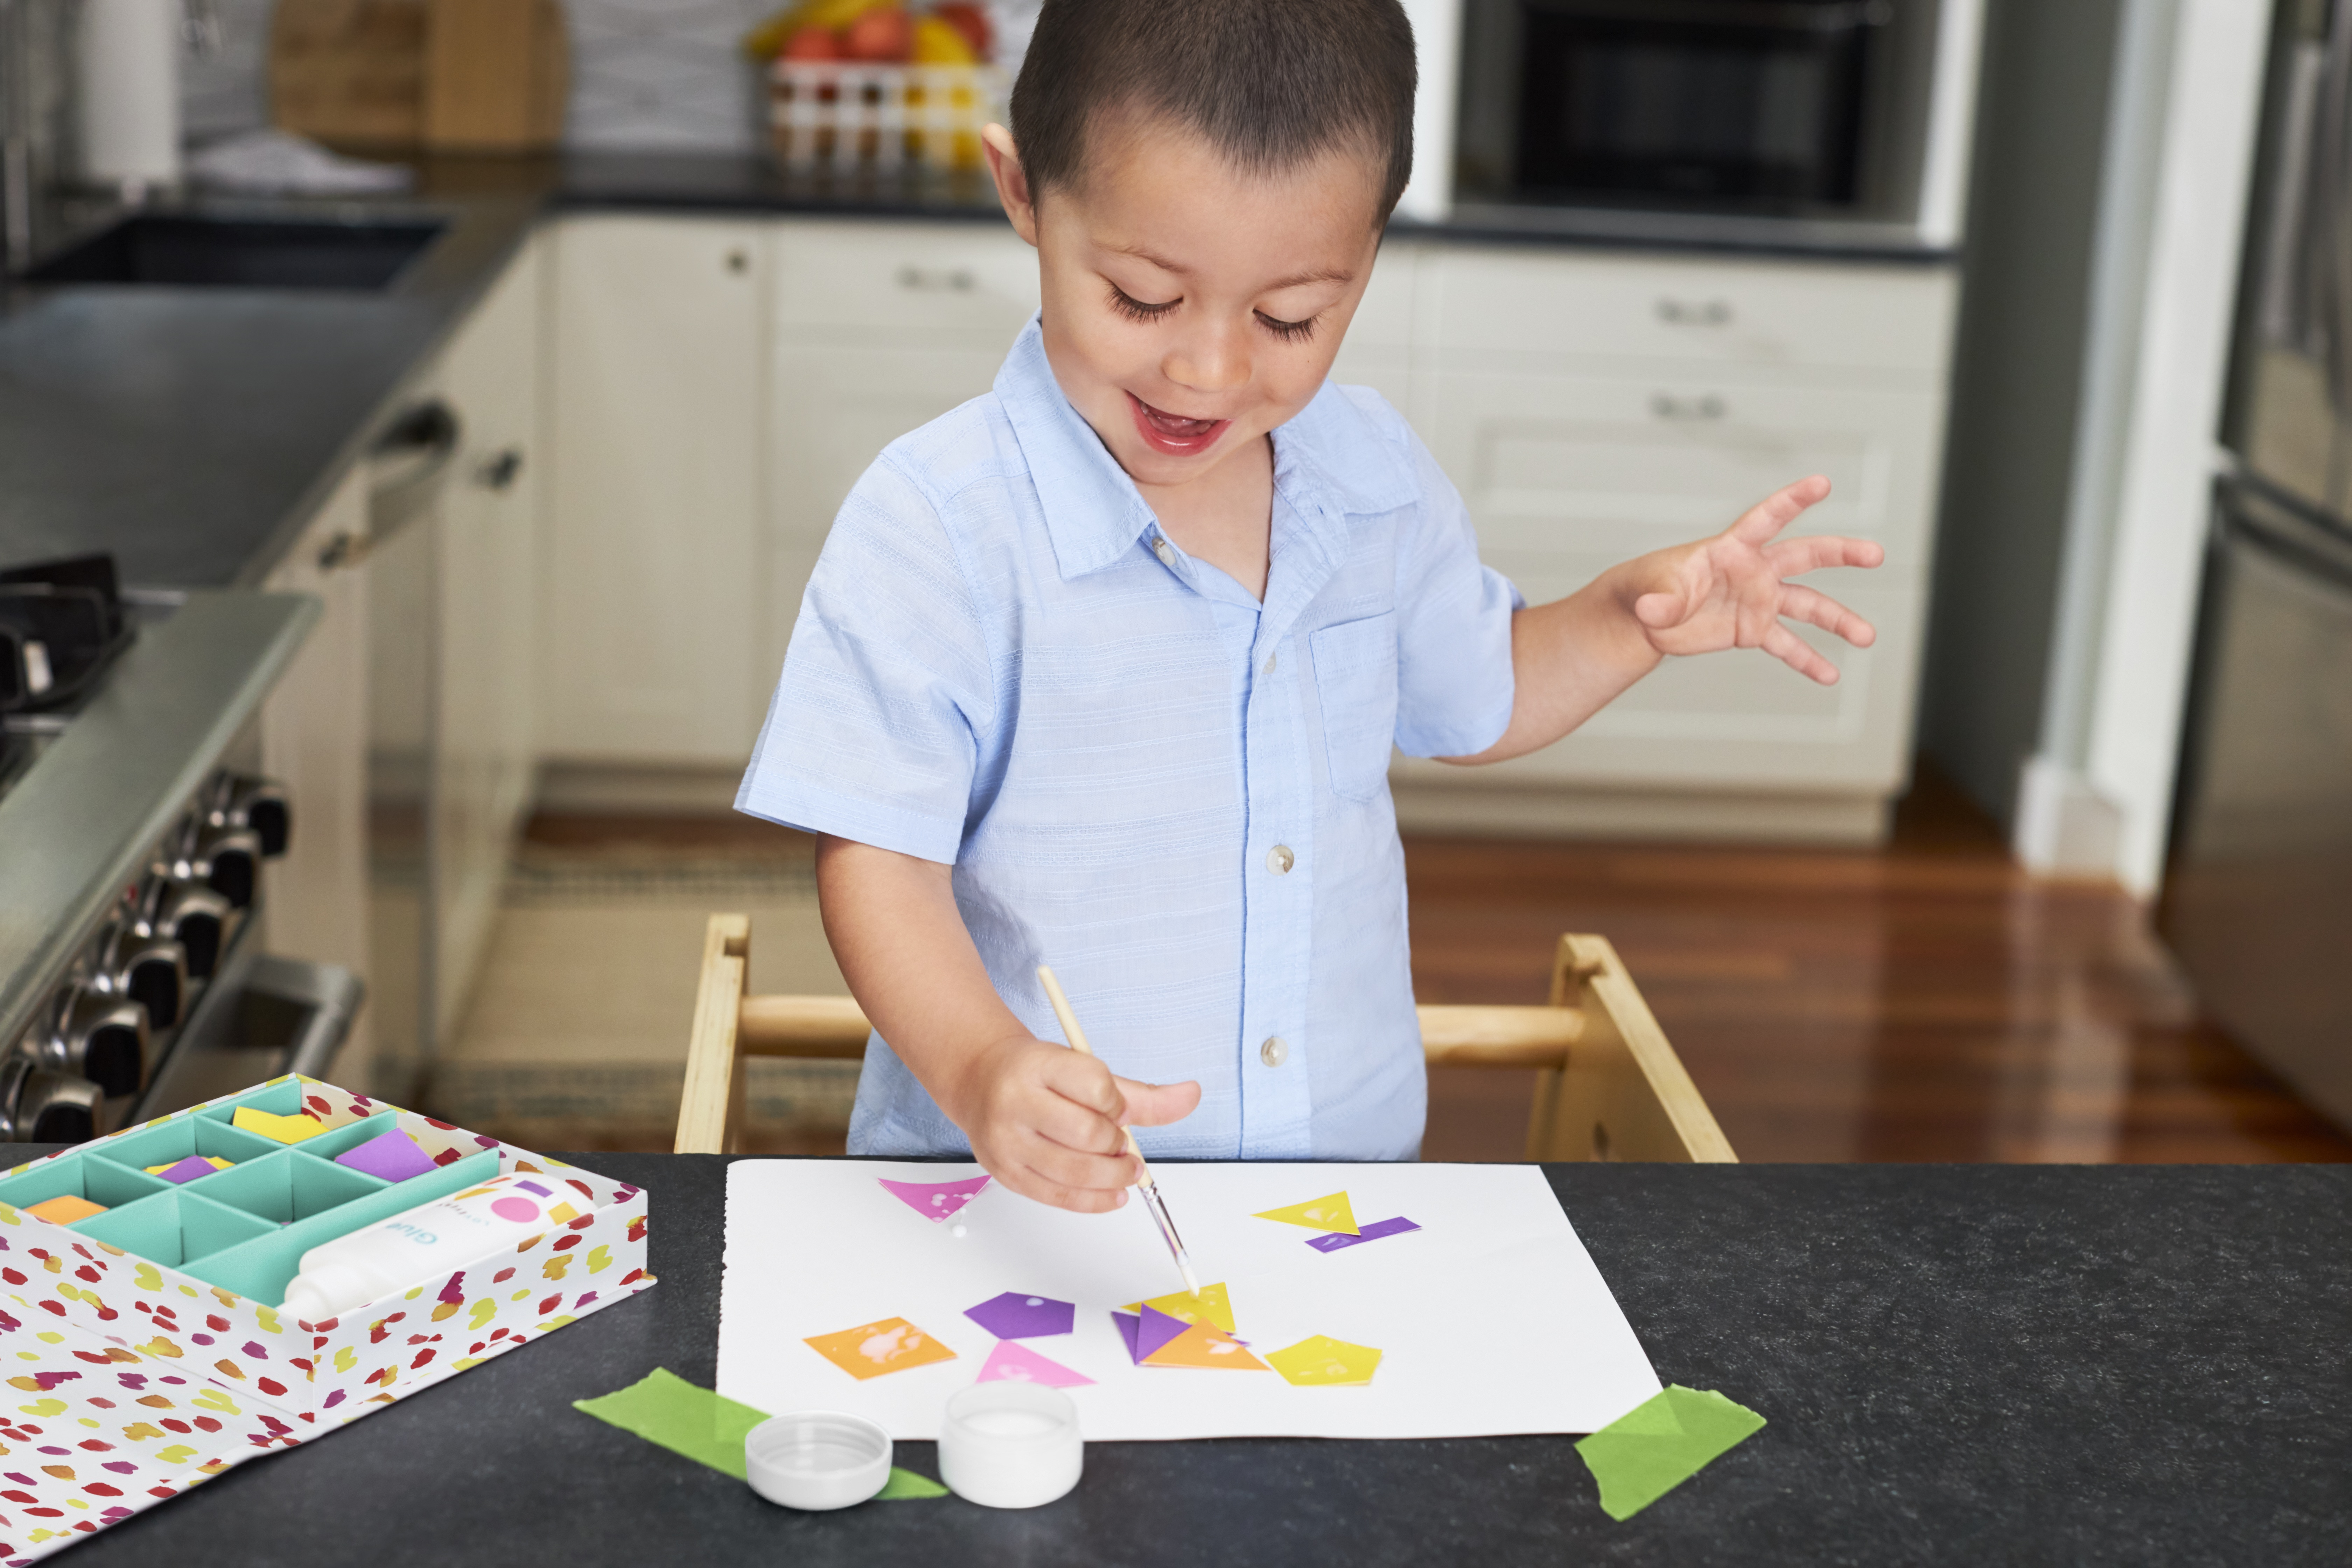 Young child playing with the Sticky Shapes Glue Station by Lovevery